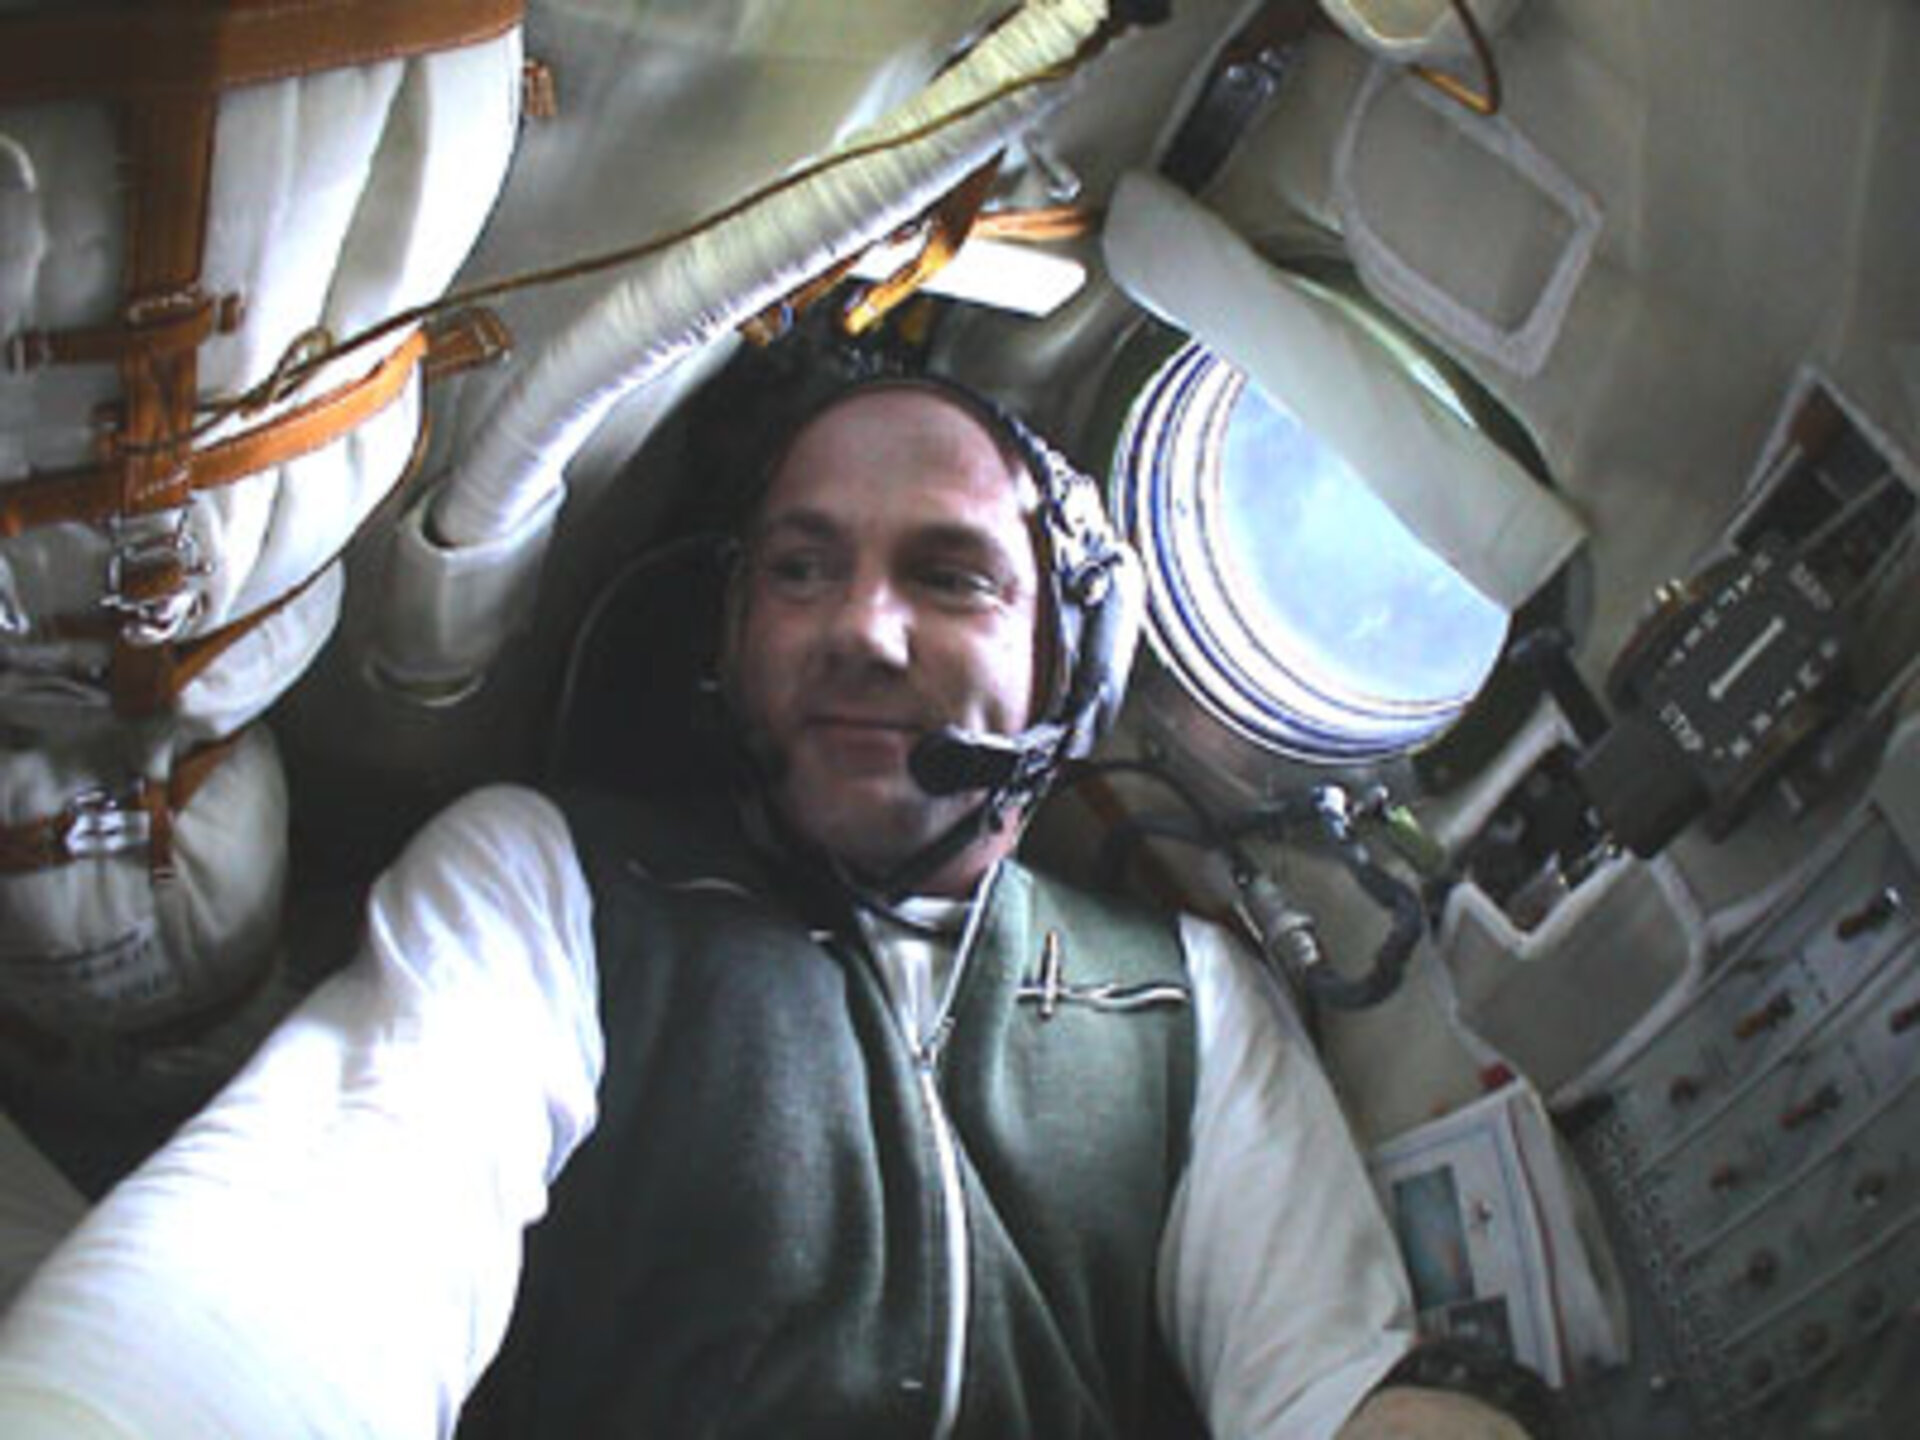 André in the Soyuz capsule in 2004